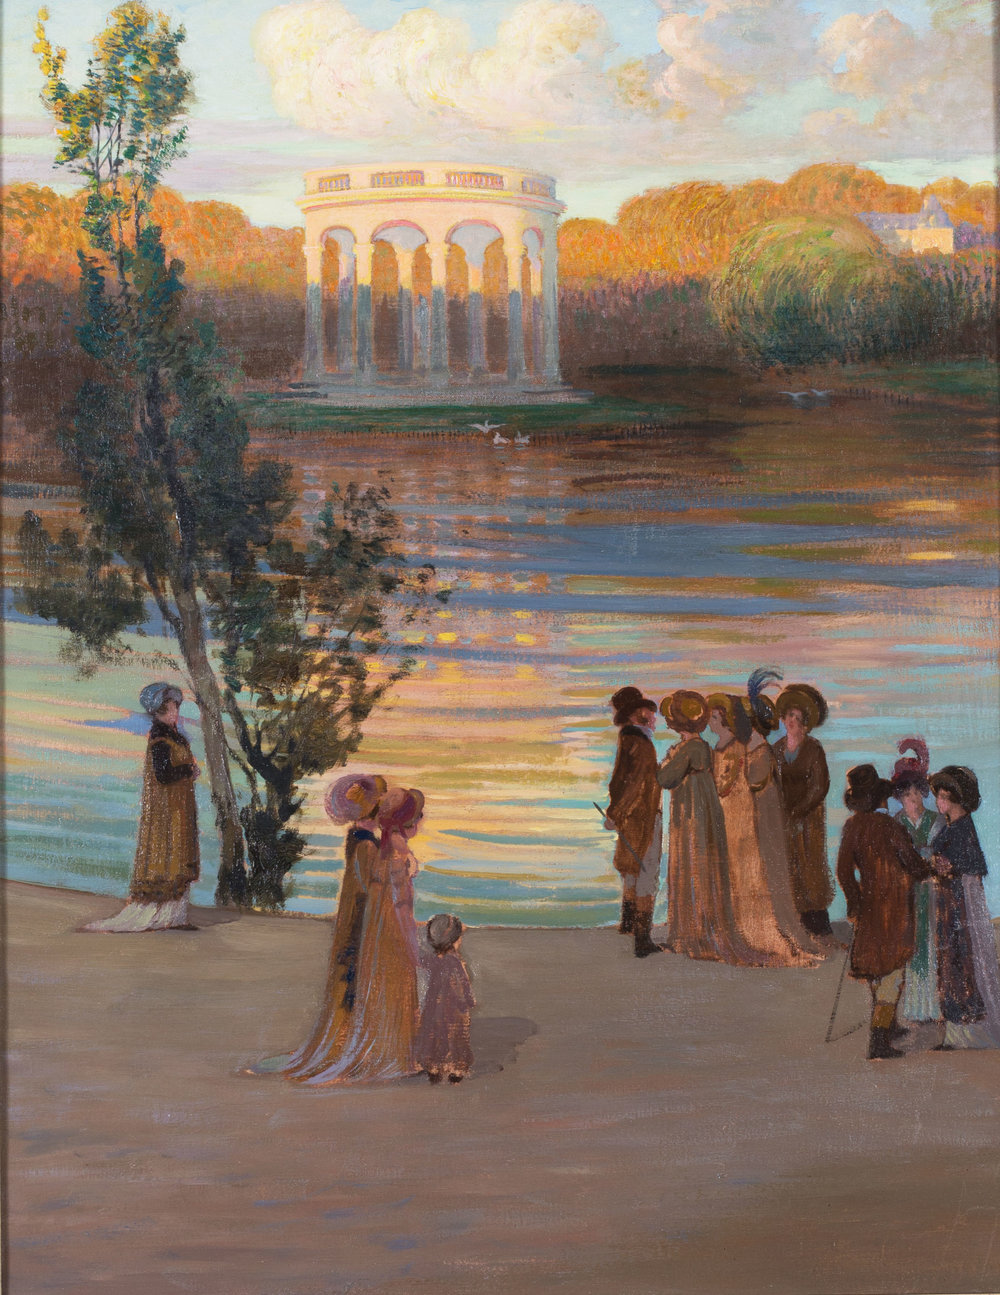 Gustave Poetzsch (Swiss, 1870 - 1950)    Scene du Directoire devant le Temple de l'amour, Versailles   Oil on canvas Unsigned 31 x 25in. (78.8 x 63.5 cm.) dimensions including frame  Condition: Oil on canvas not relined, paint surface in good order. Some good impasto. Surface scratches to tree. Otherwise in very good condition. In a silver gilt frame with a few minor abrasions.   SOLD